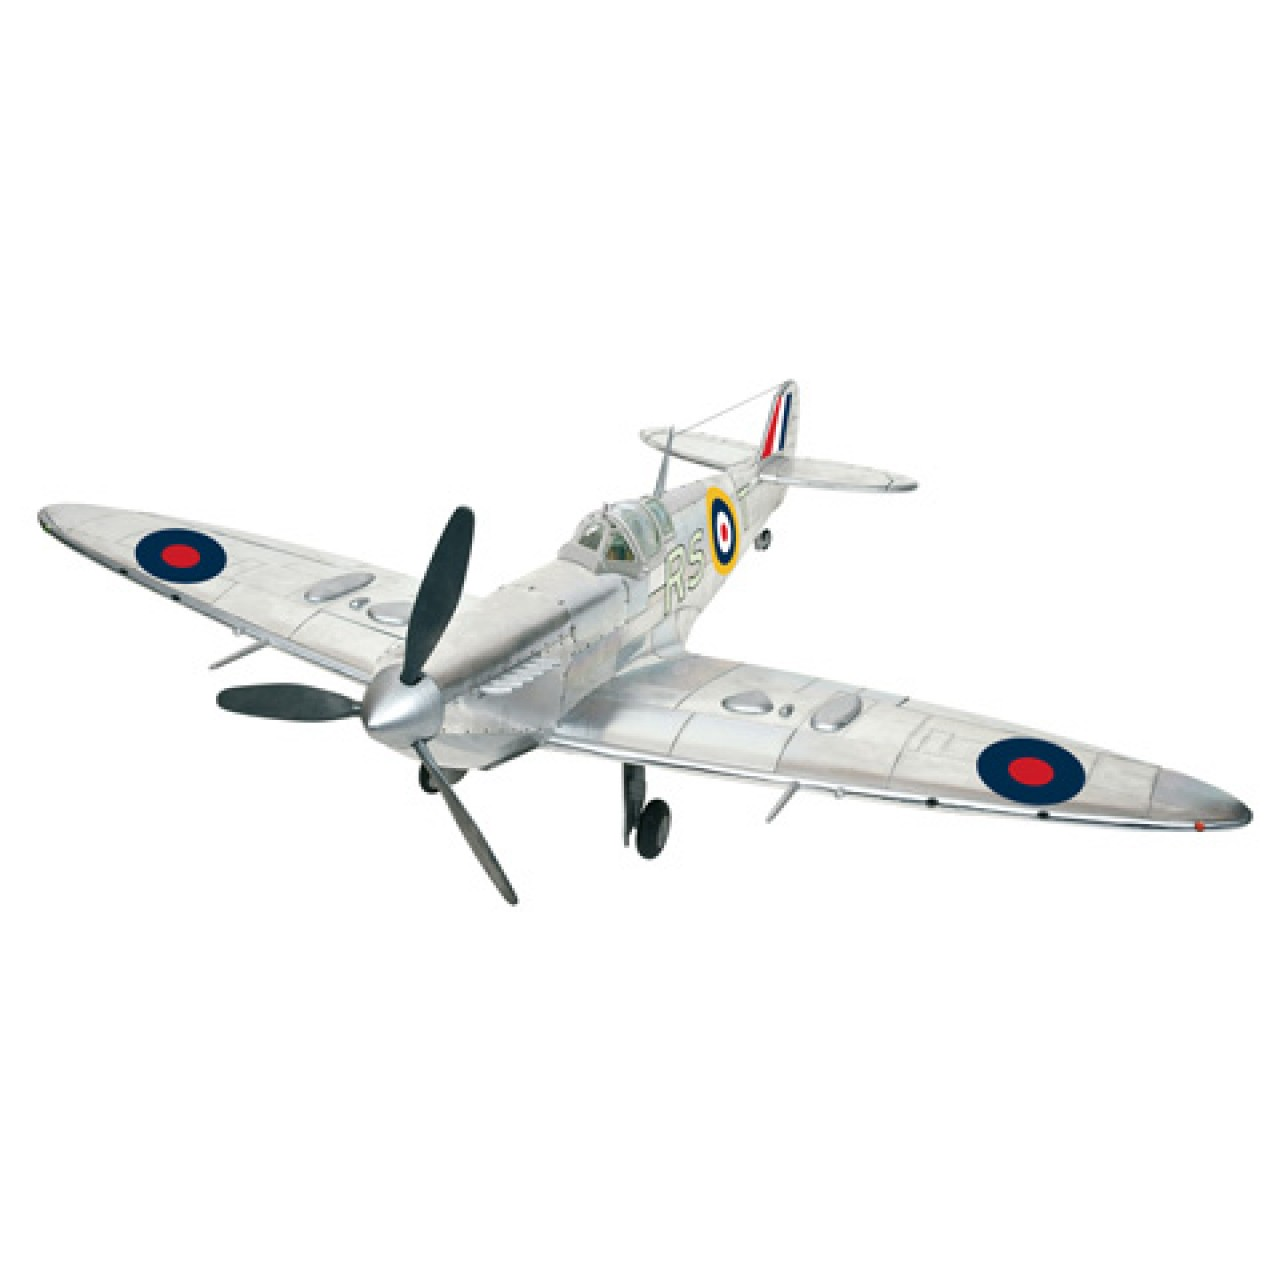 Spitfire Model Airplane 1:12 Scale